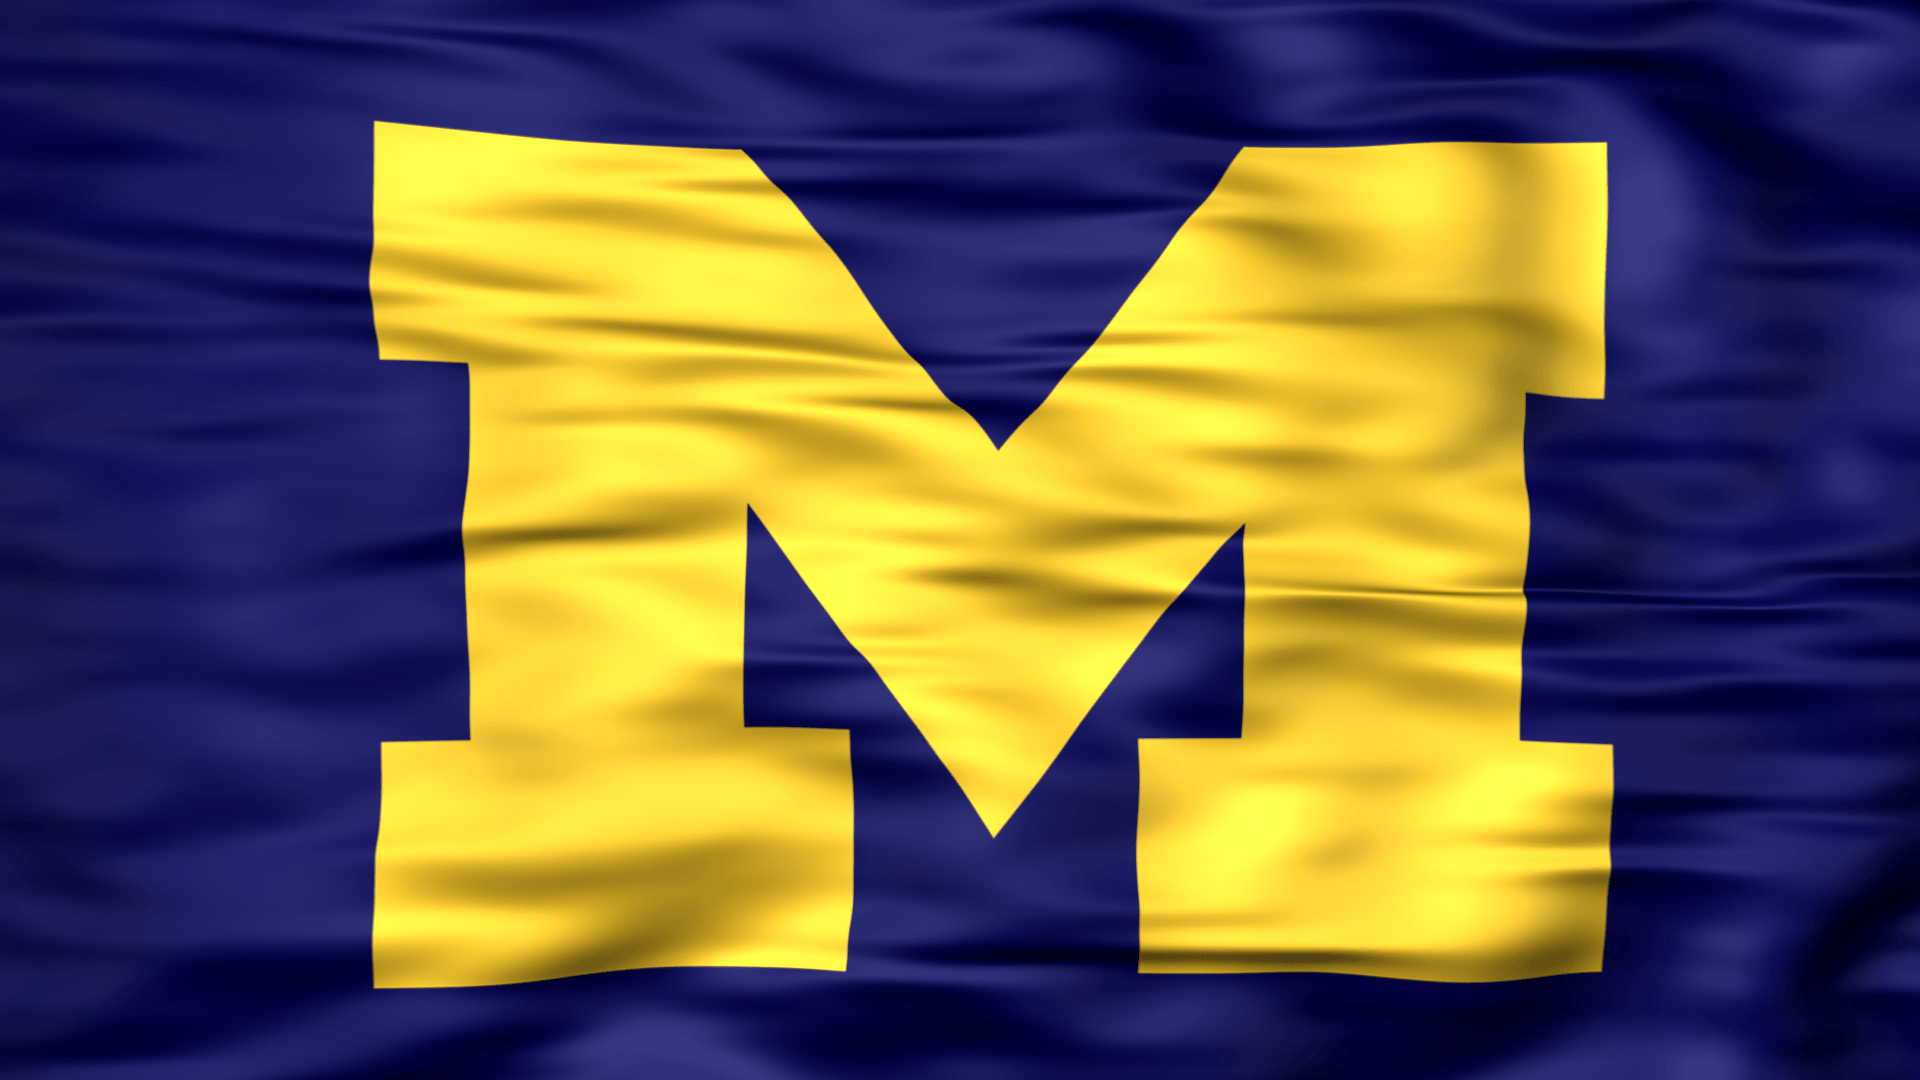 University Of Michigan Football - WallDevil